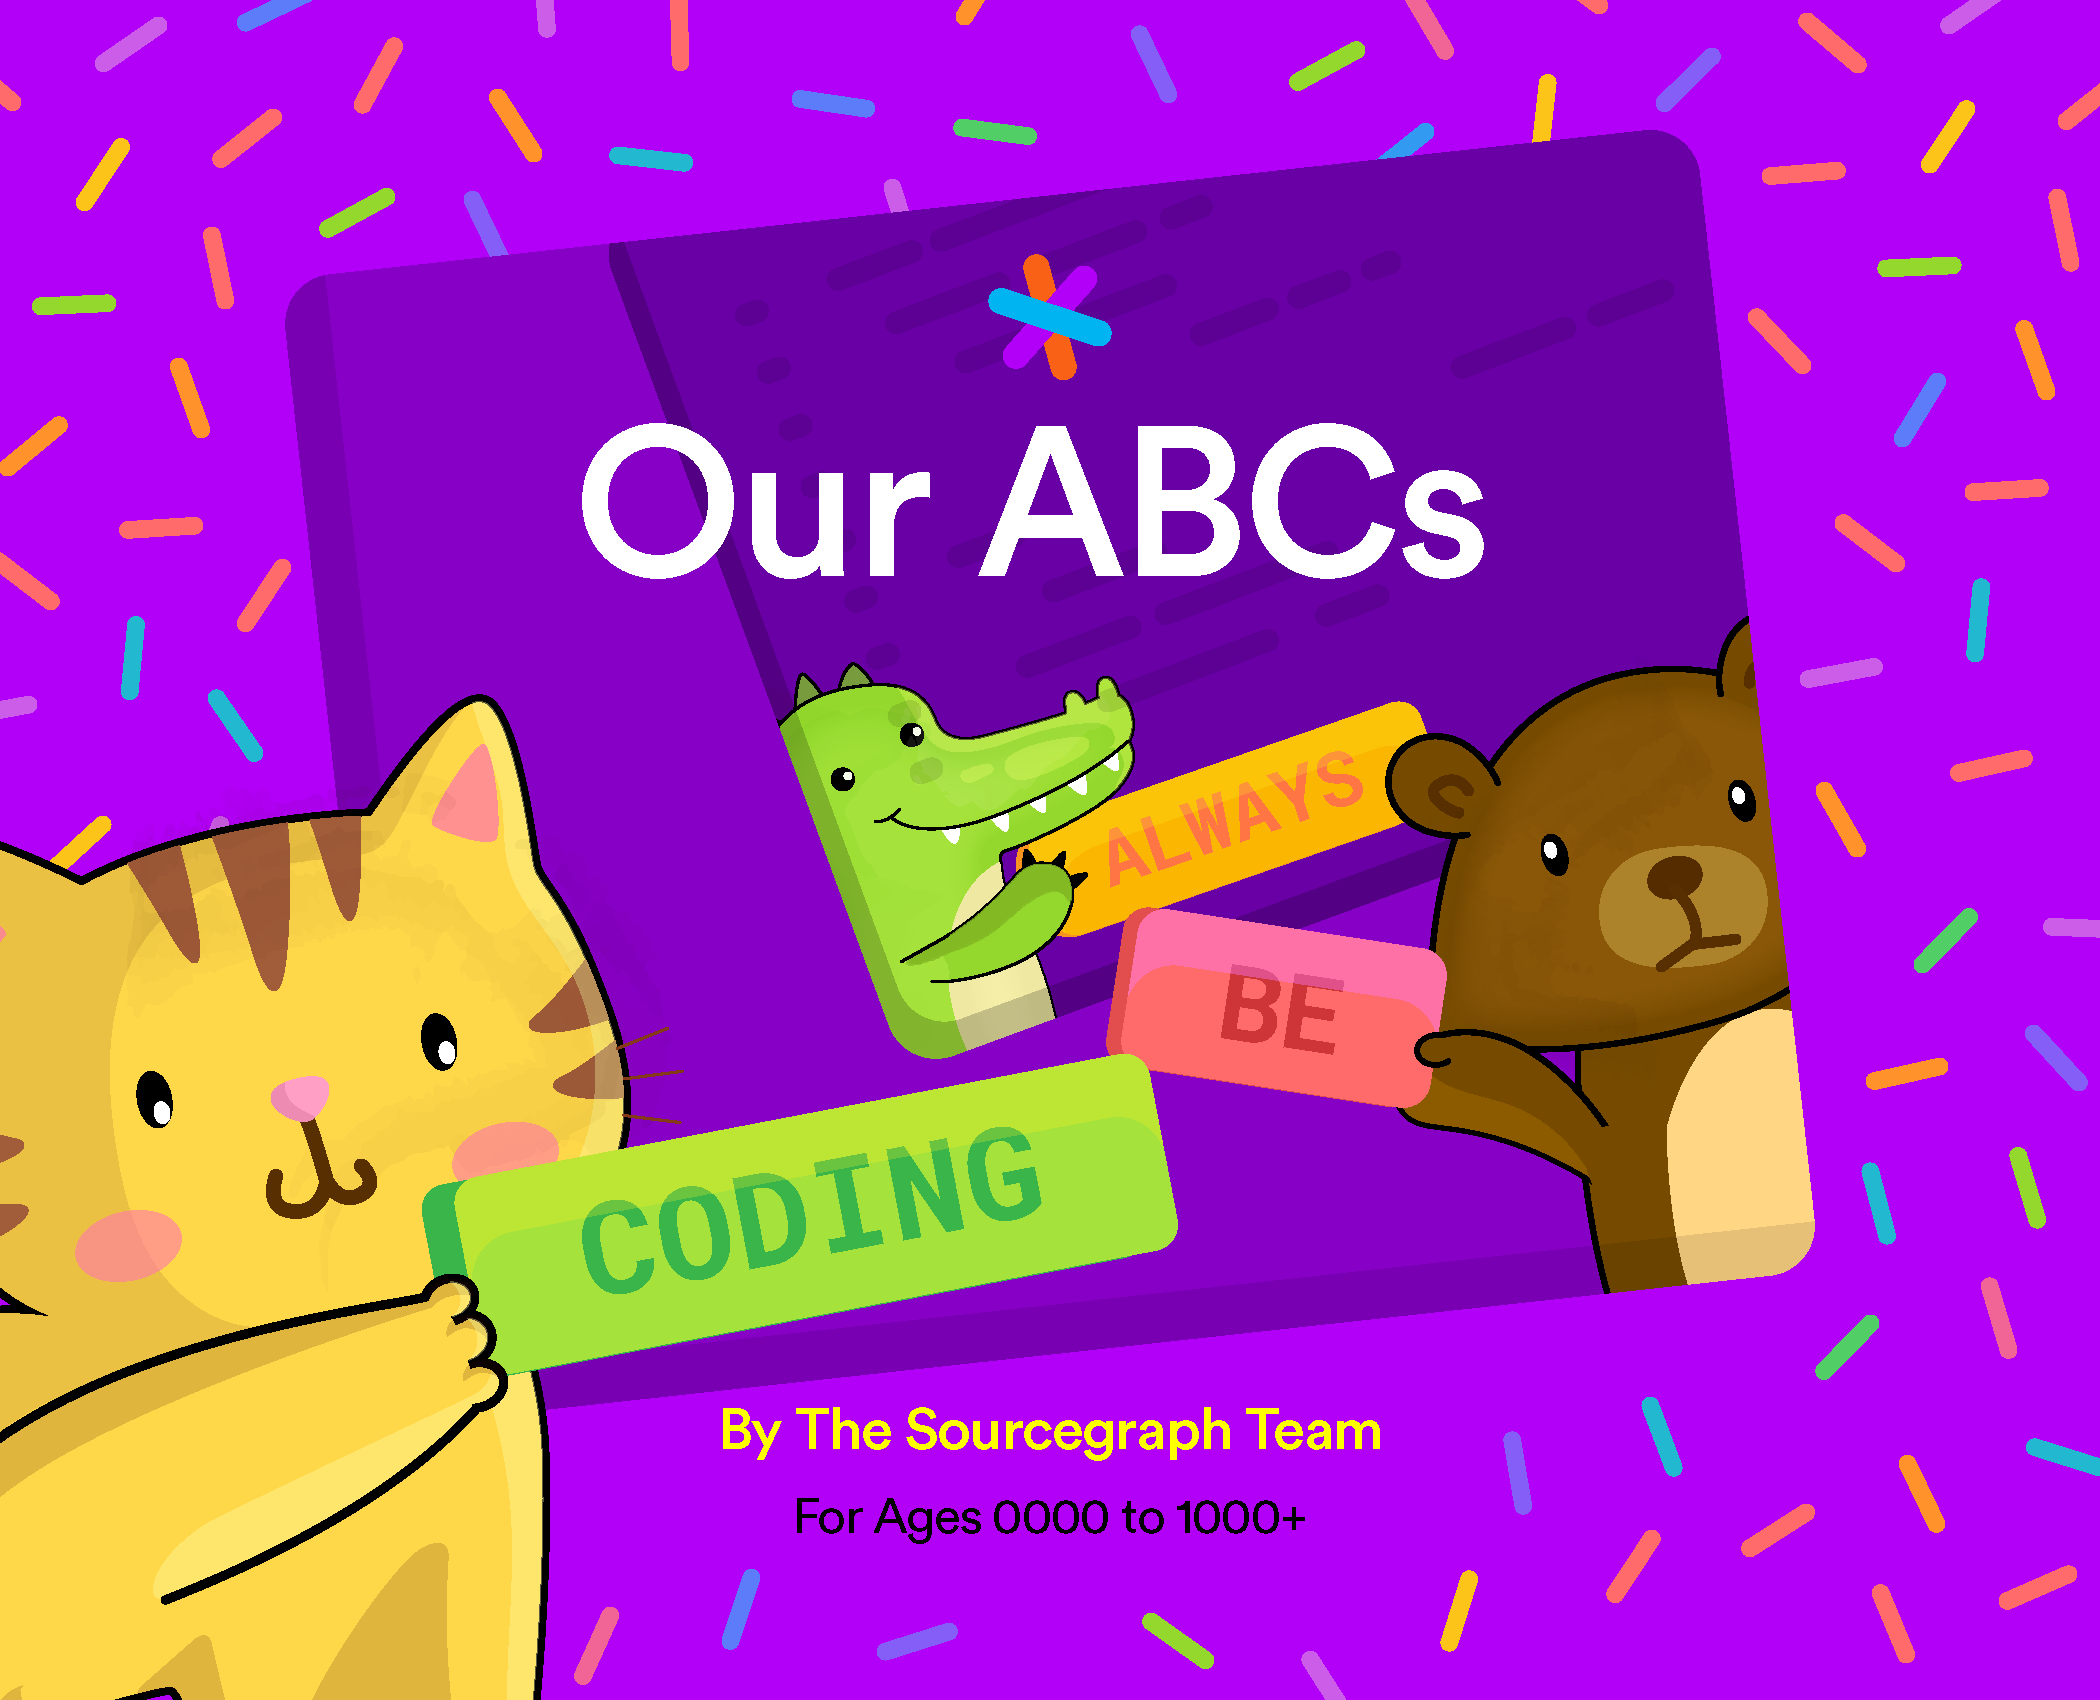 Press Release: Sourcegraph Releases Free Digital Children's Book Titled 'Our ABCs: Always Be Coding'